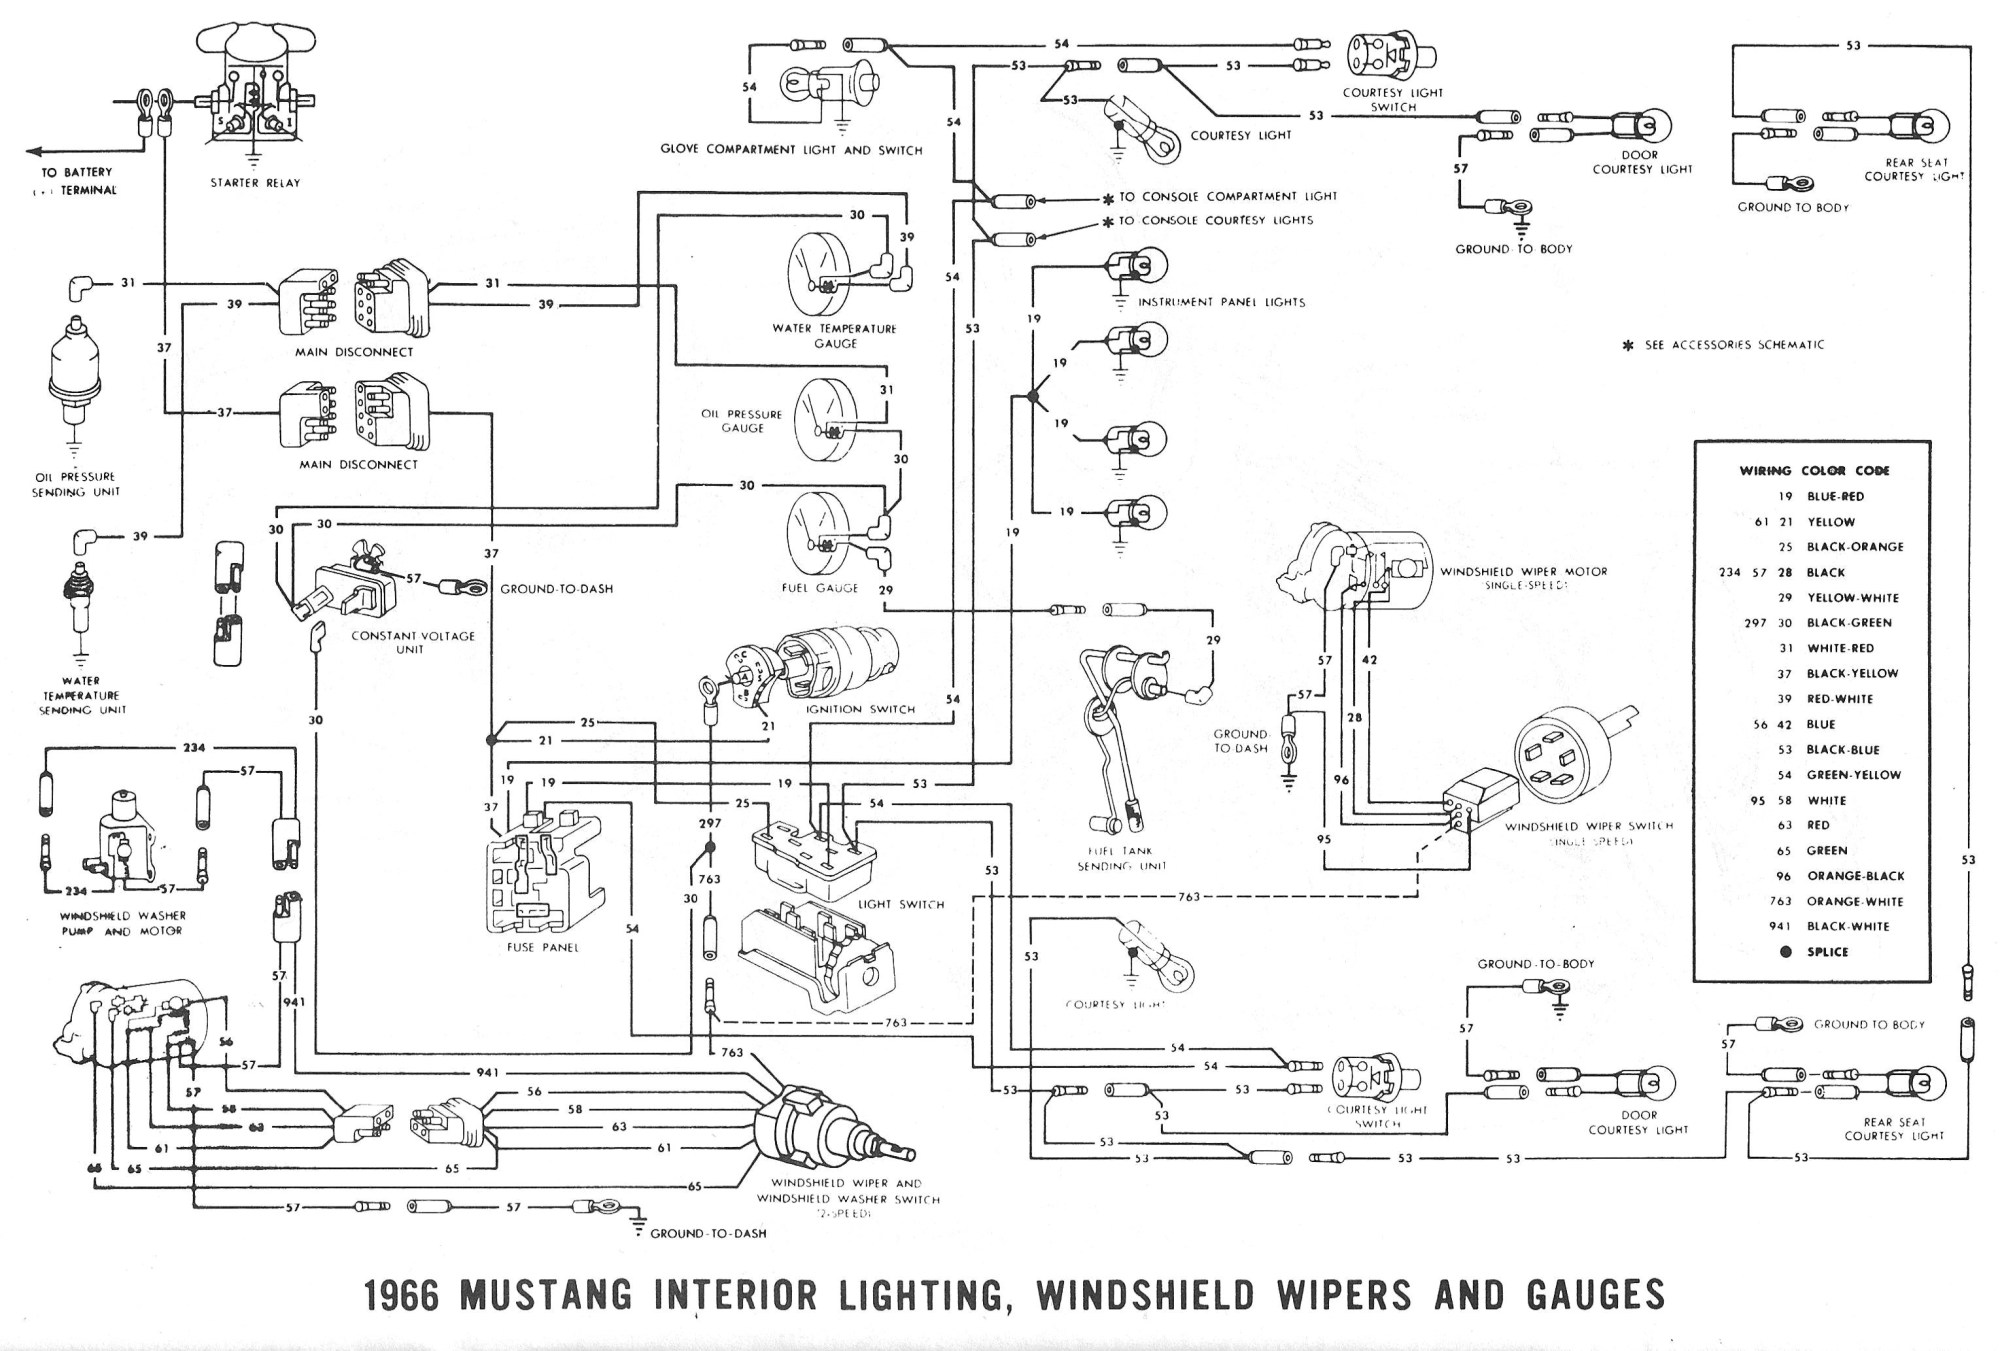 hight resolution of ford mustang wiper switch wiring diagram 1967 wiring diagram view ford mustang wiper switch wiring diagram 1967